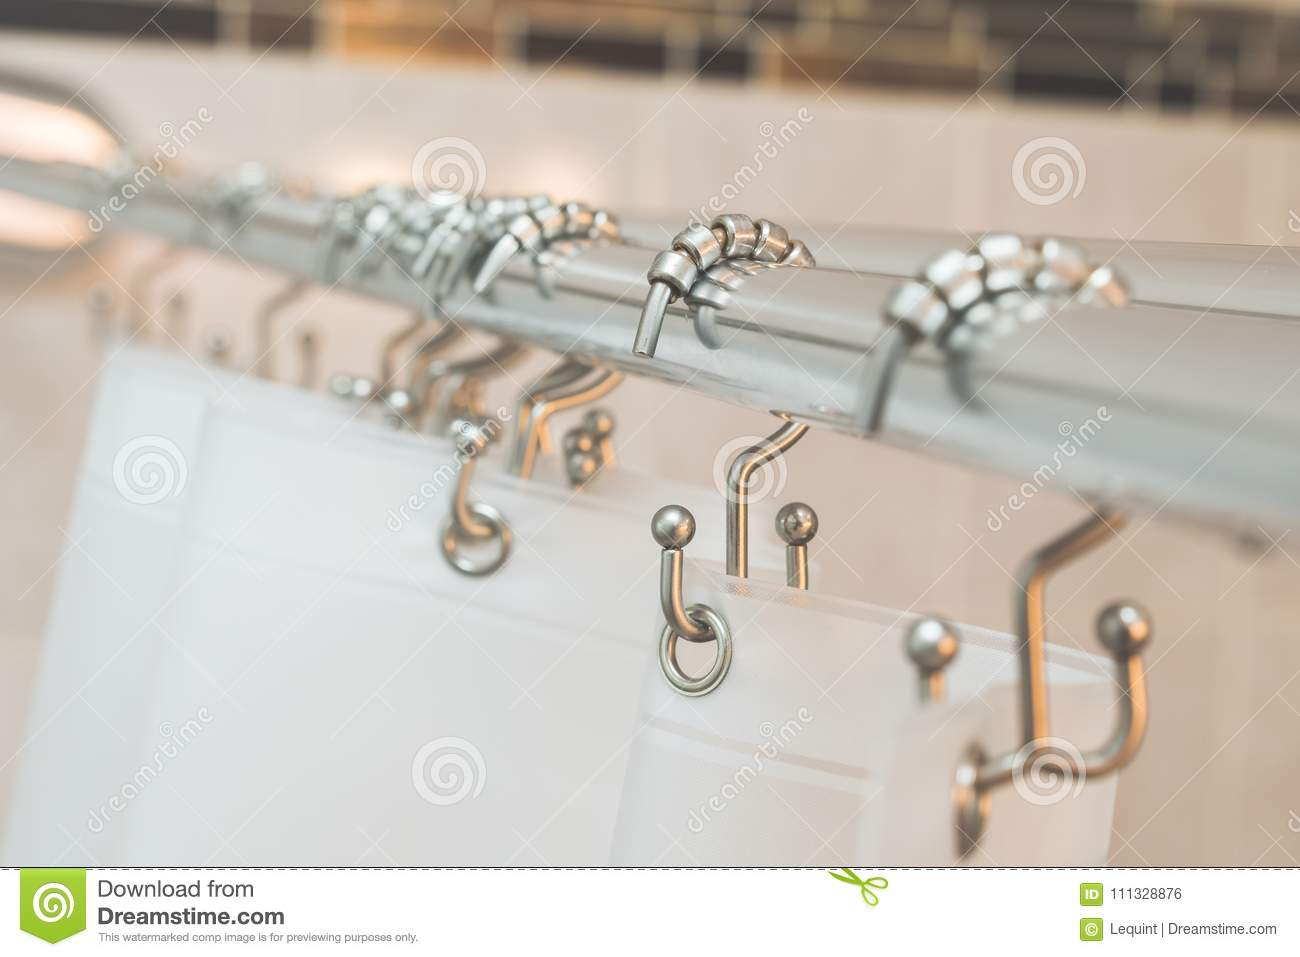 Shower Curtain Rod And Rings With Vinyl Transparent Stock